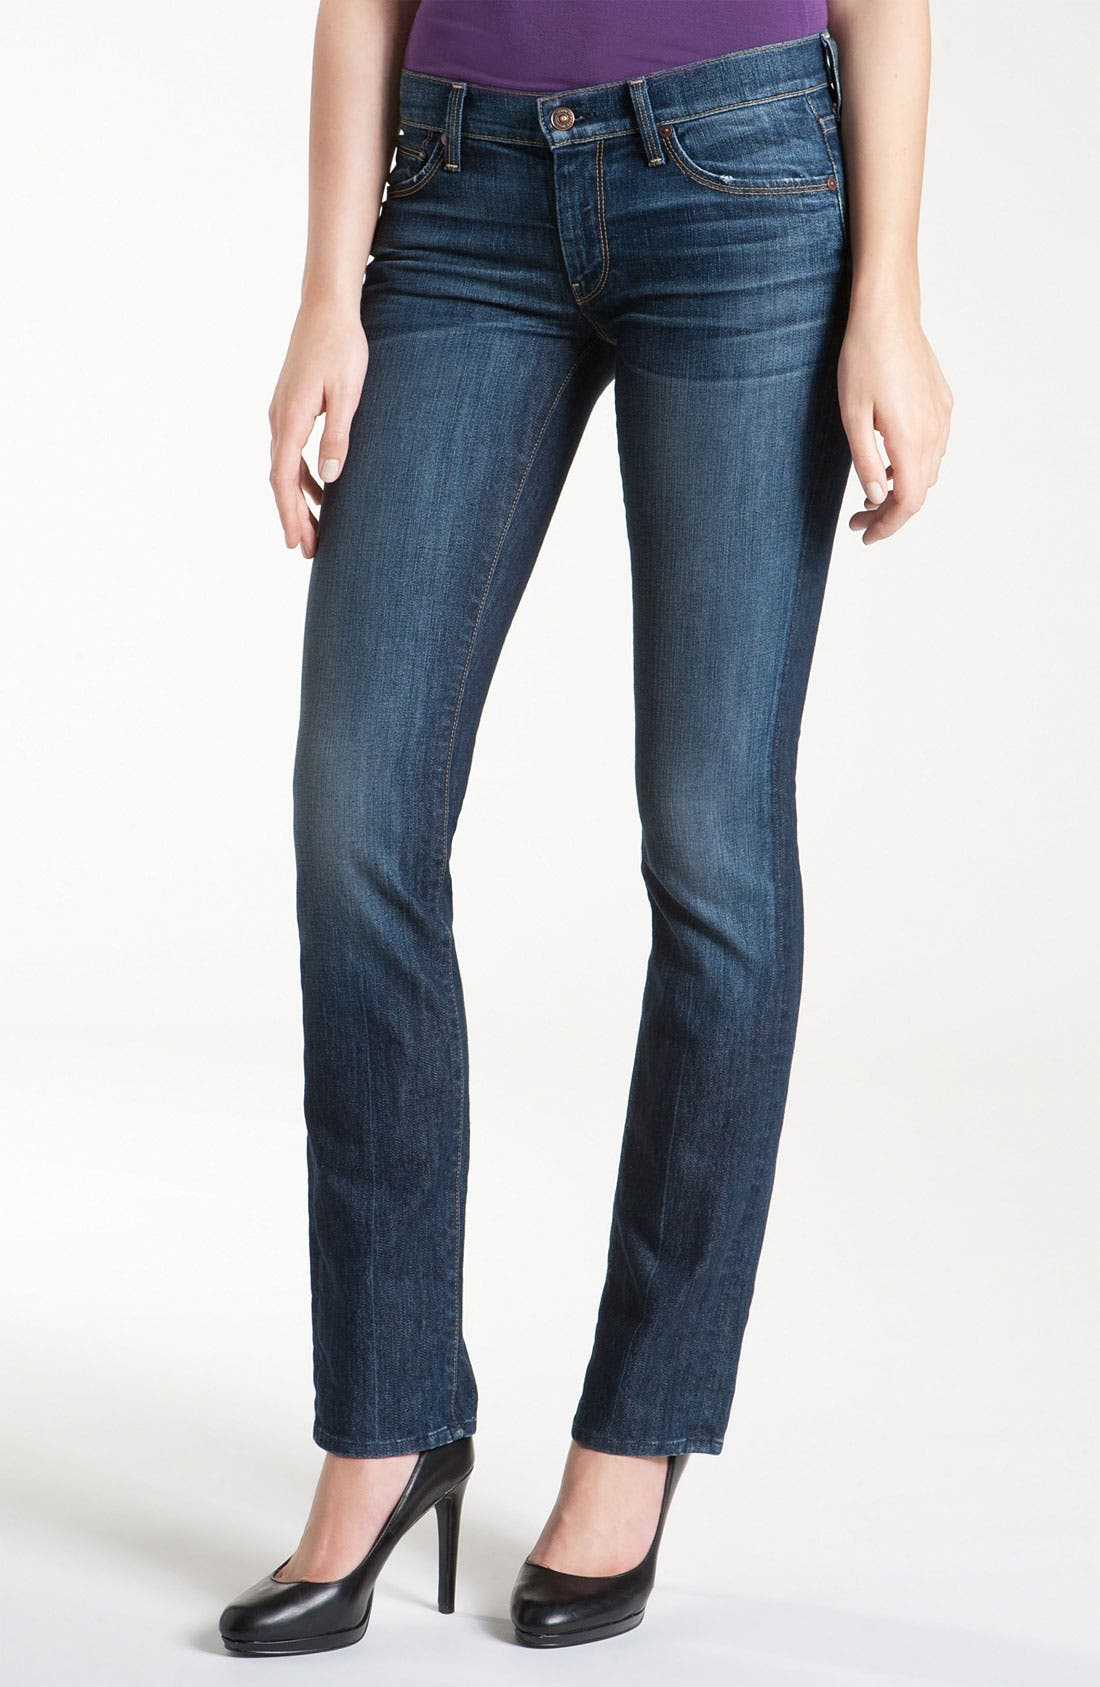 Alternate Image 1 Selected - 7 For All Mankind® Straight Leg Jeans (Nouveau New York Dark)